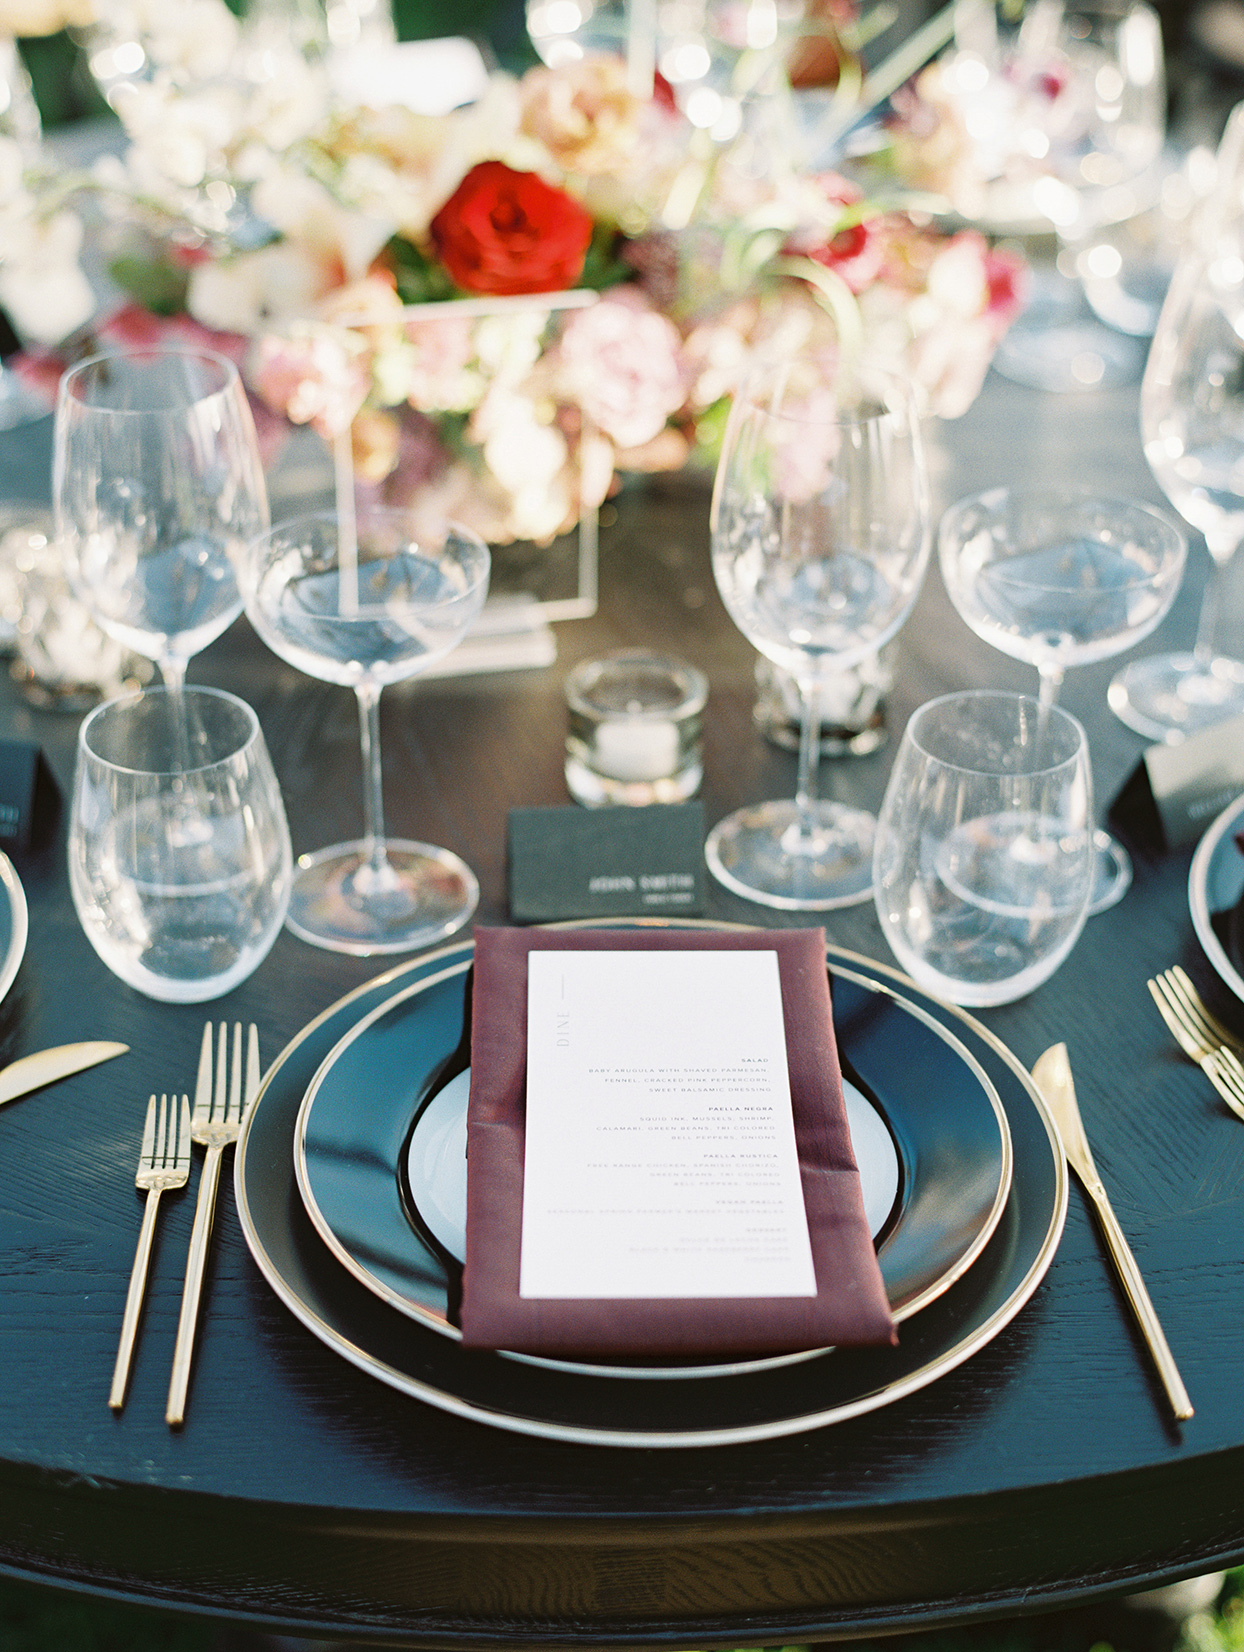 elegant black, gold and maroon place setting